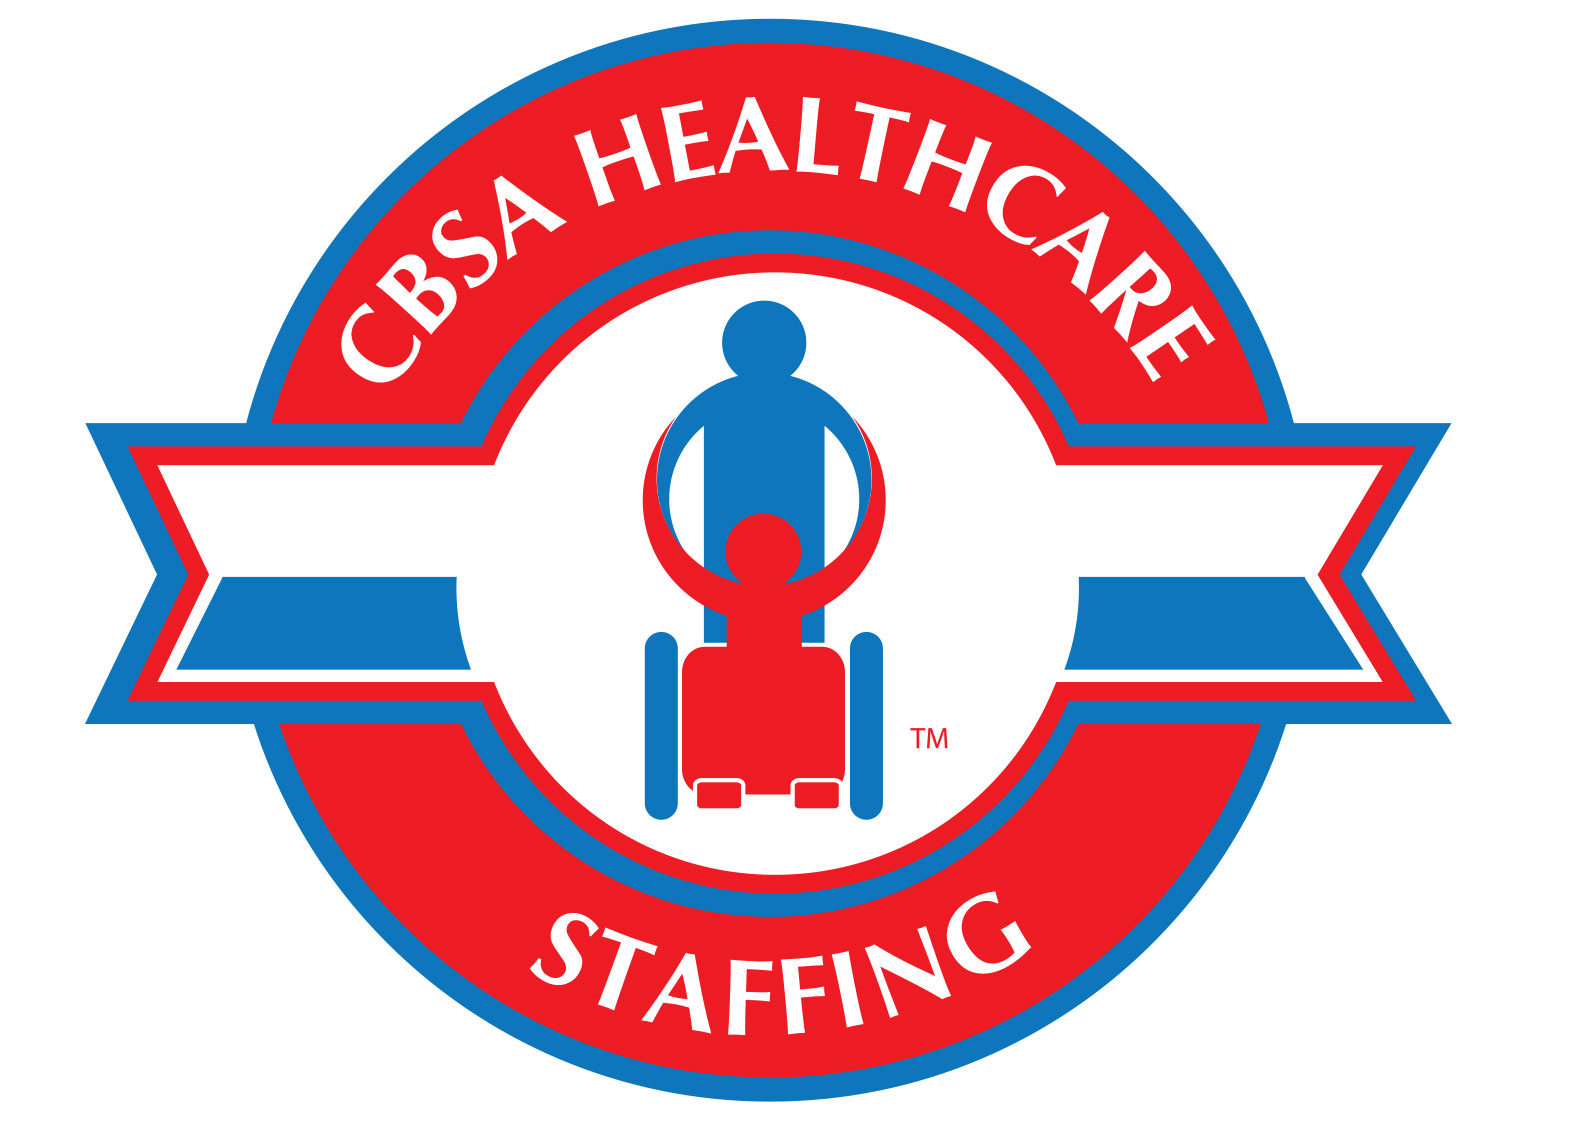 CBSA HealthCare Staffing